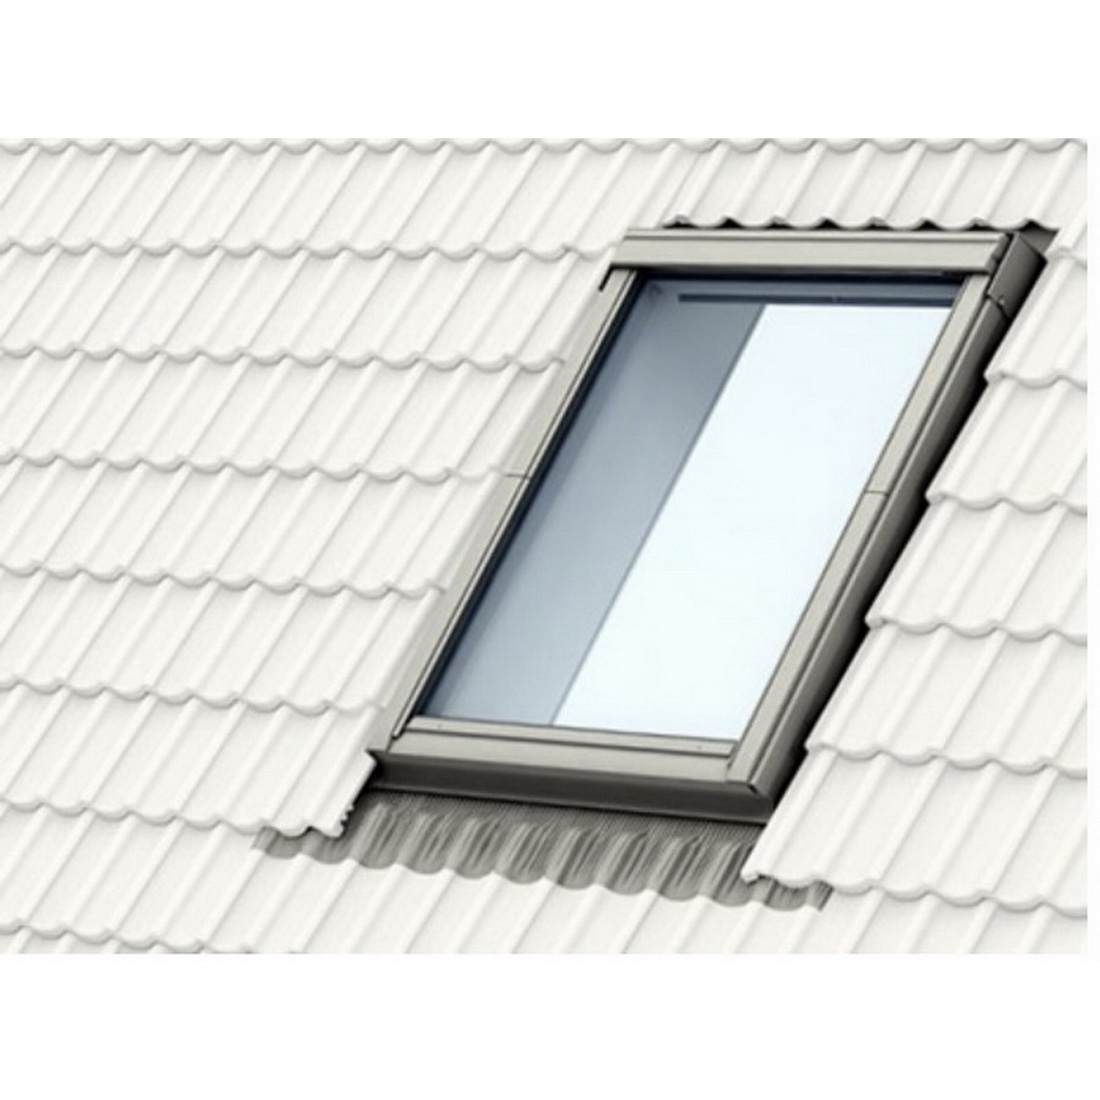 Velux EDW Flashing Kit For Metal/Tile Roofing Material EDW M06 0000A